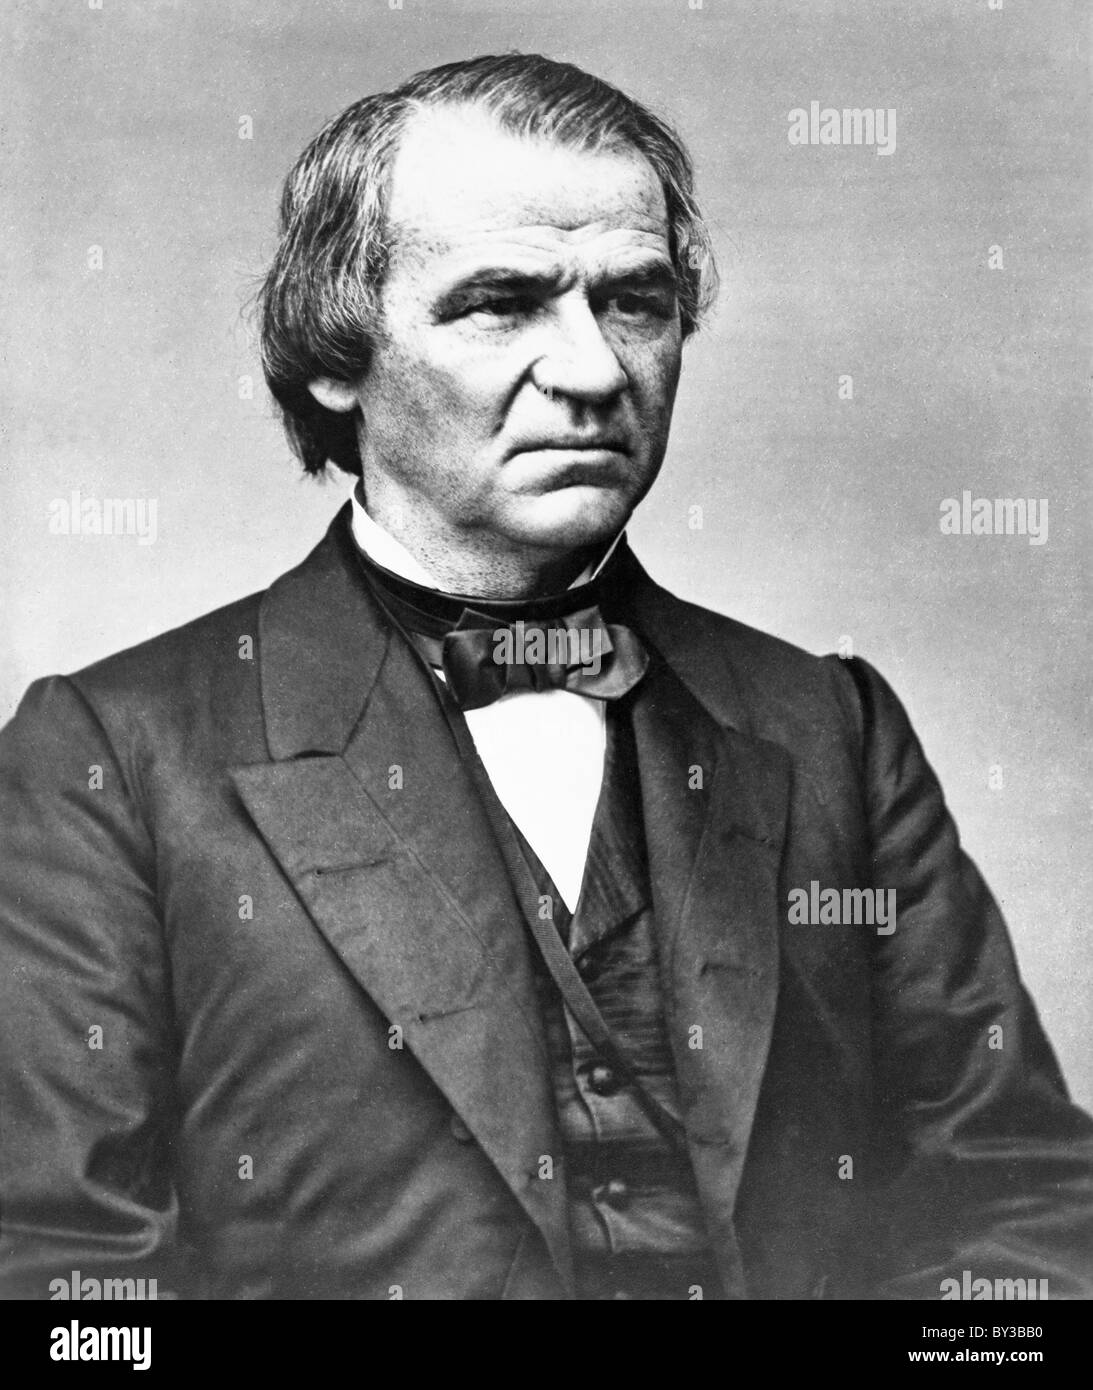 Andrew Johnson, President Andrew Johnson was the 17th President of the United States. - Stock Image